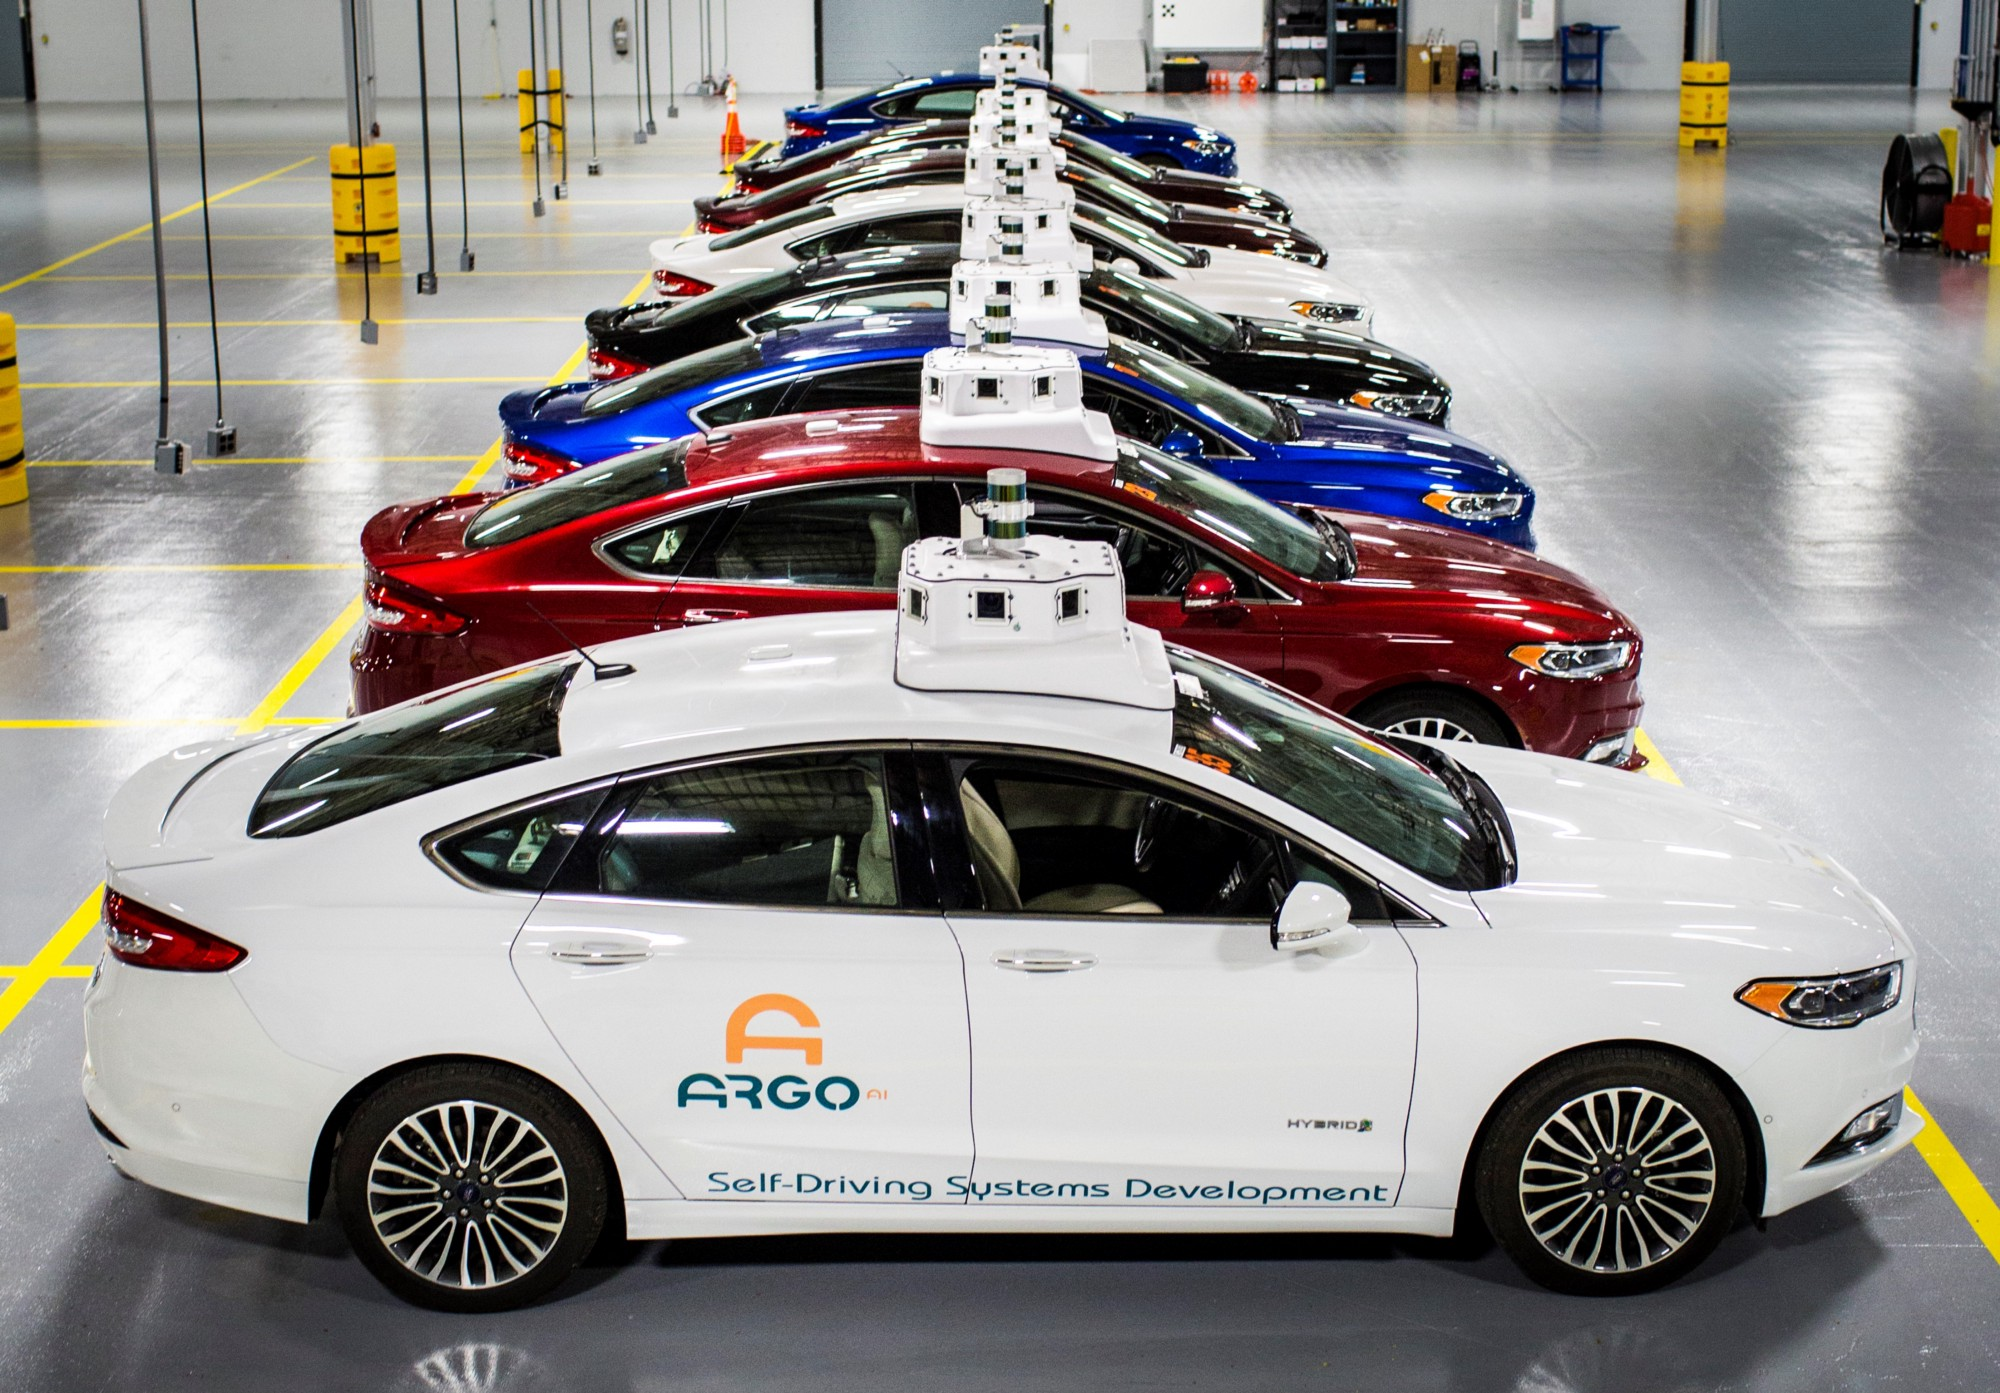 Ford designing an all-new vehicle optimized for self-driving technology